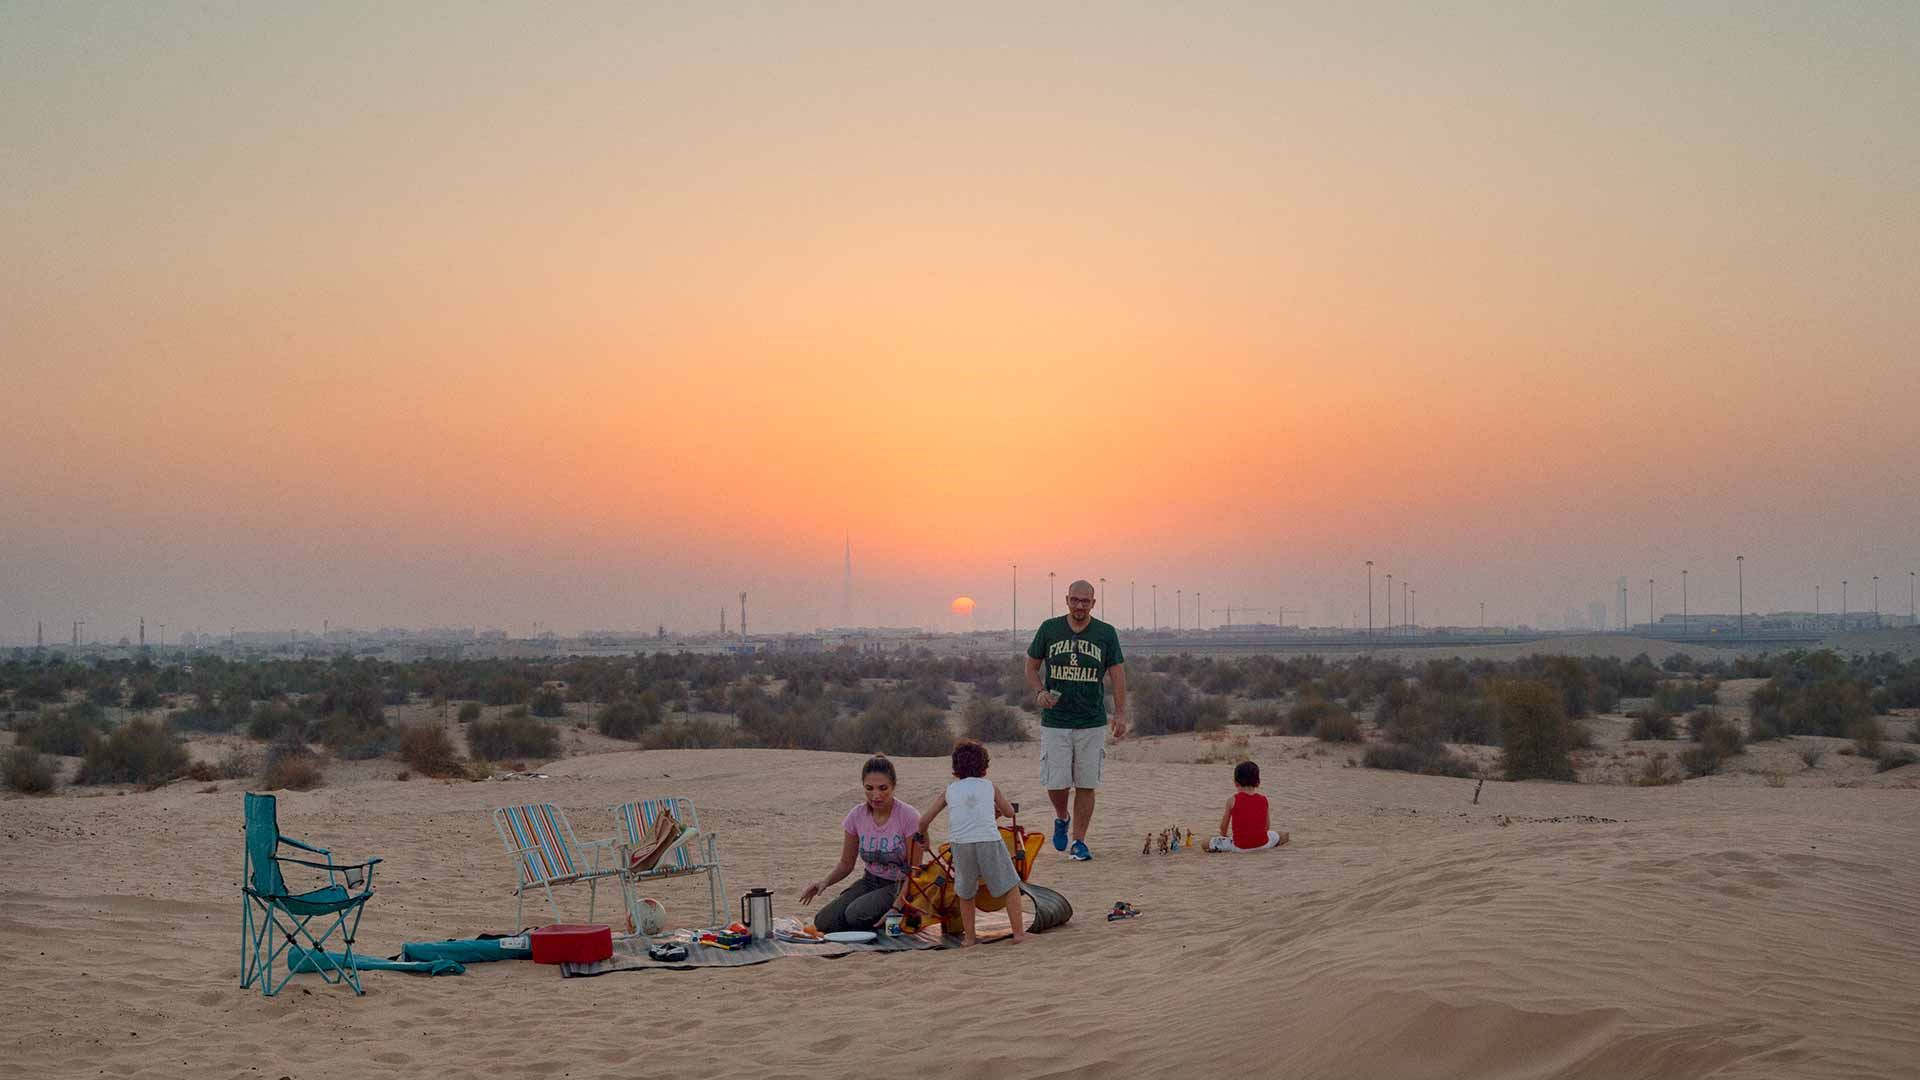 A family having a picnic in a desert